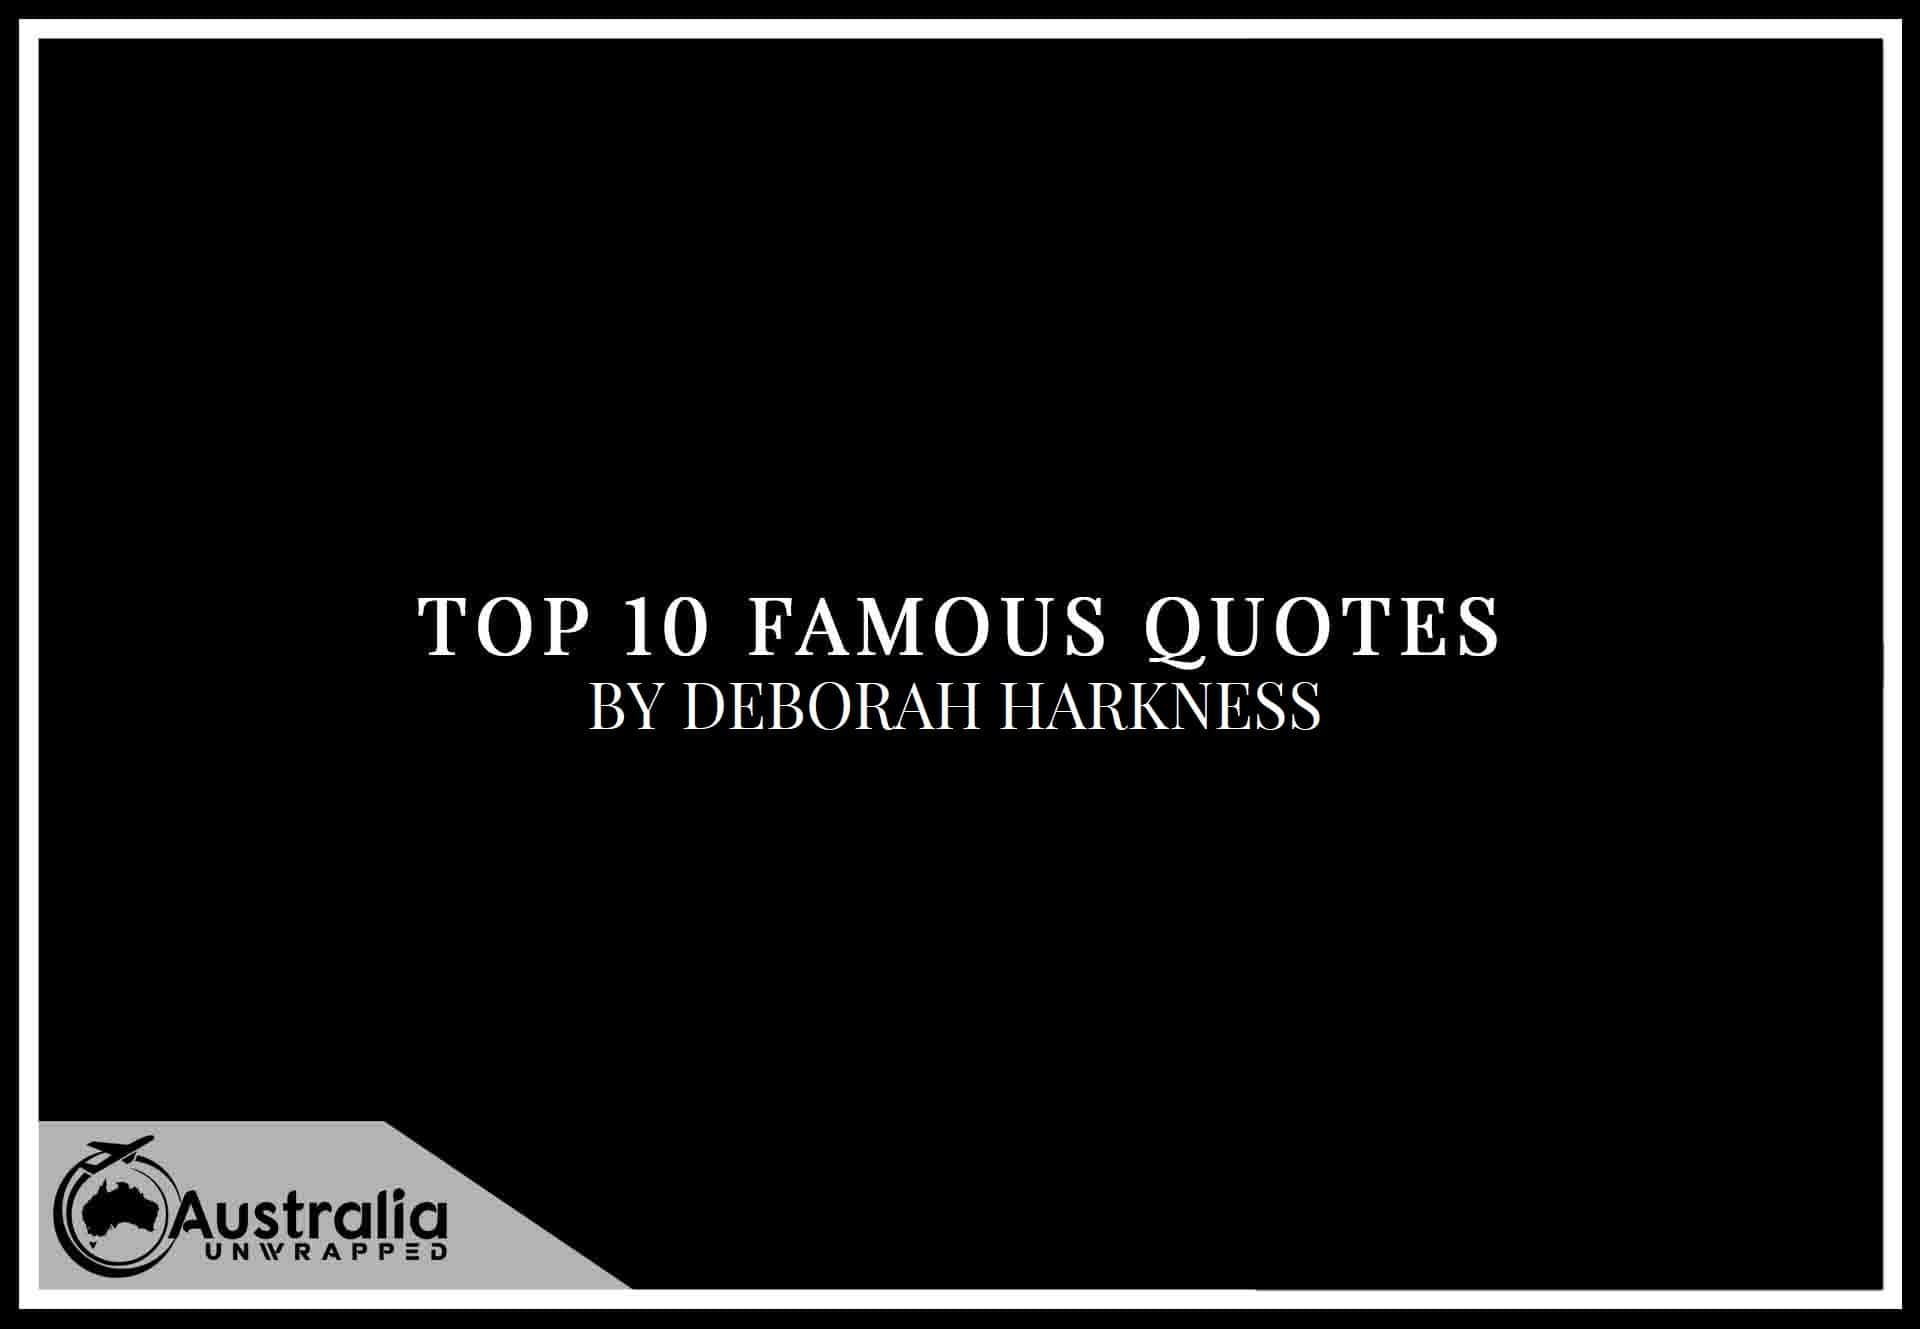 Top 10 Famous Quotes by Author Deborah Harkness